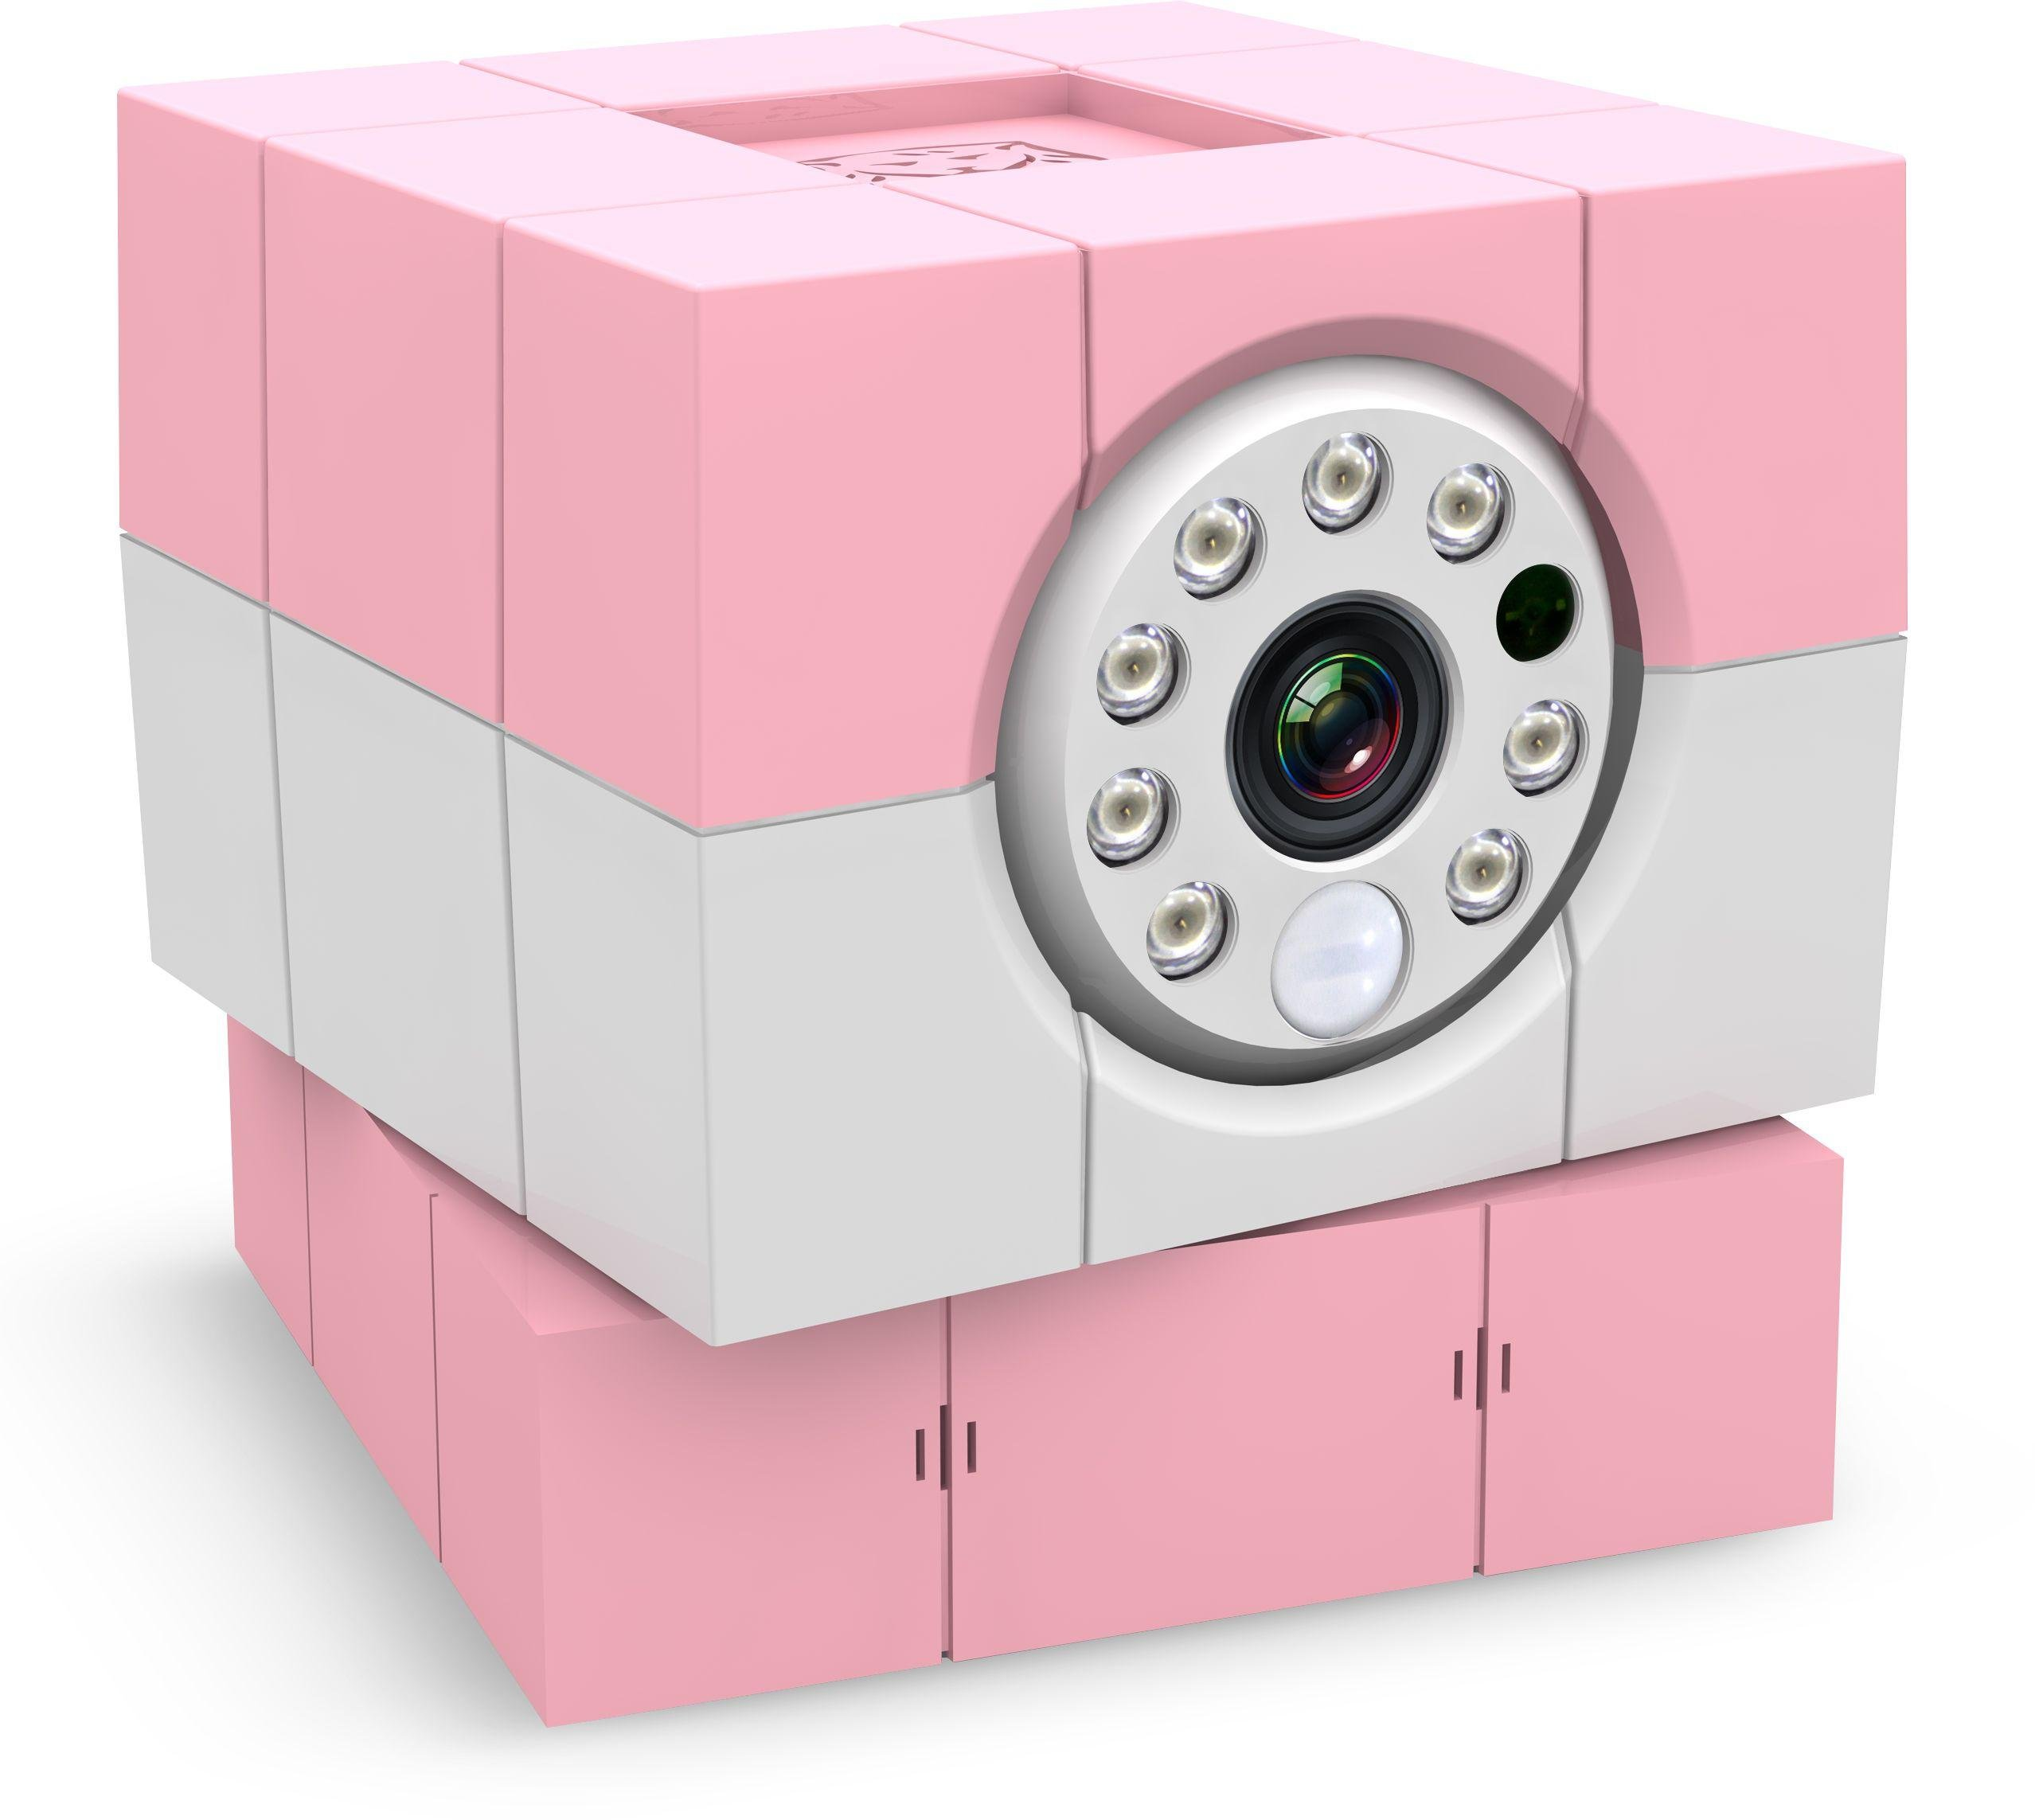 Image of Amaryllo iBabi HD360 Wireless Video Baby Monitor - Pink